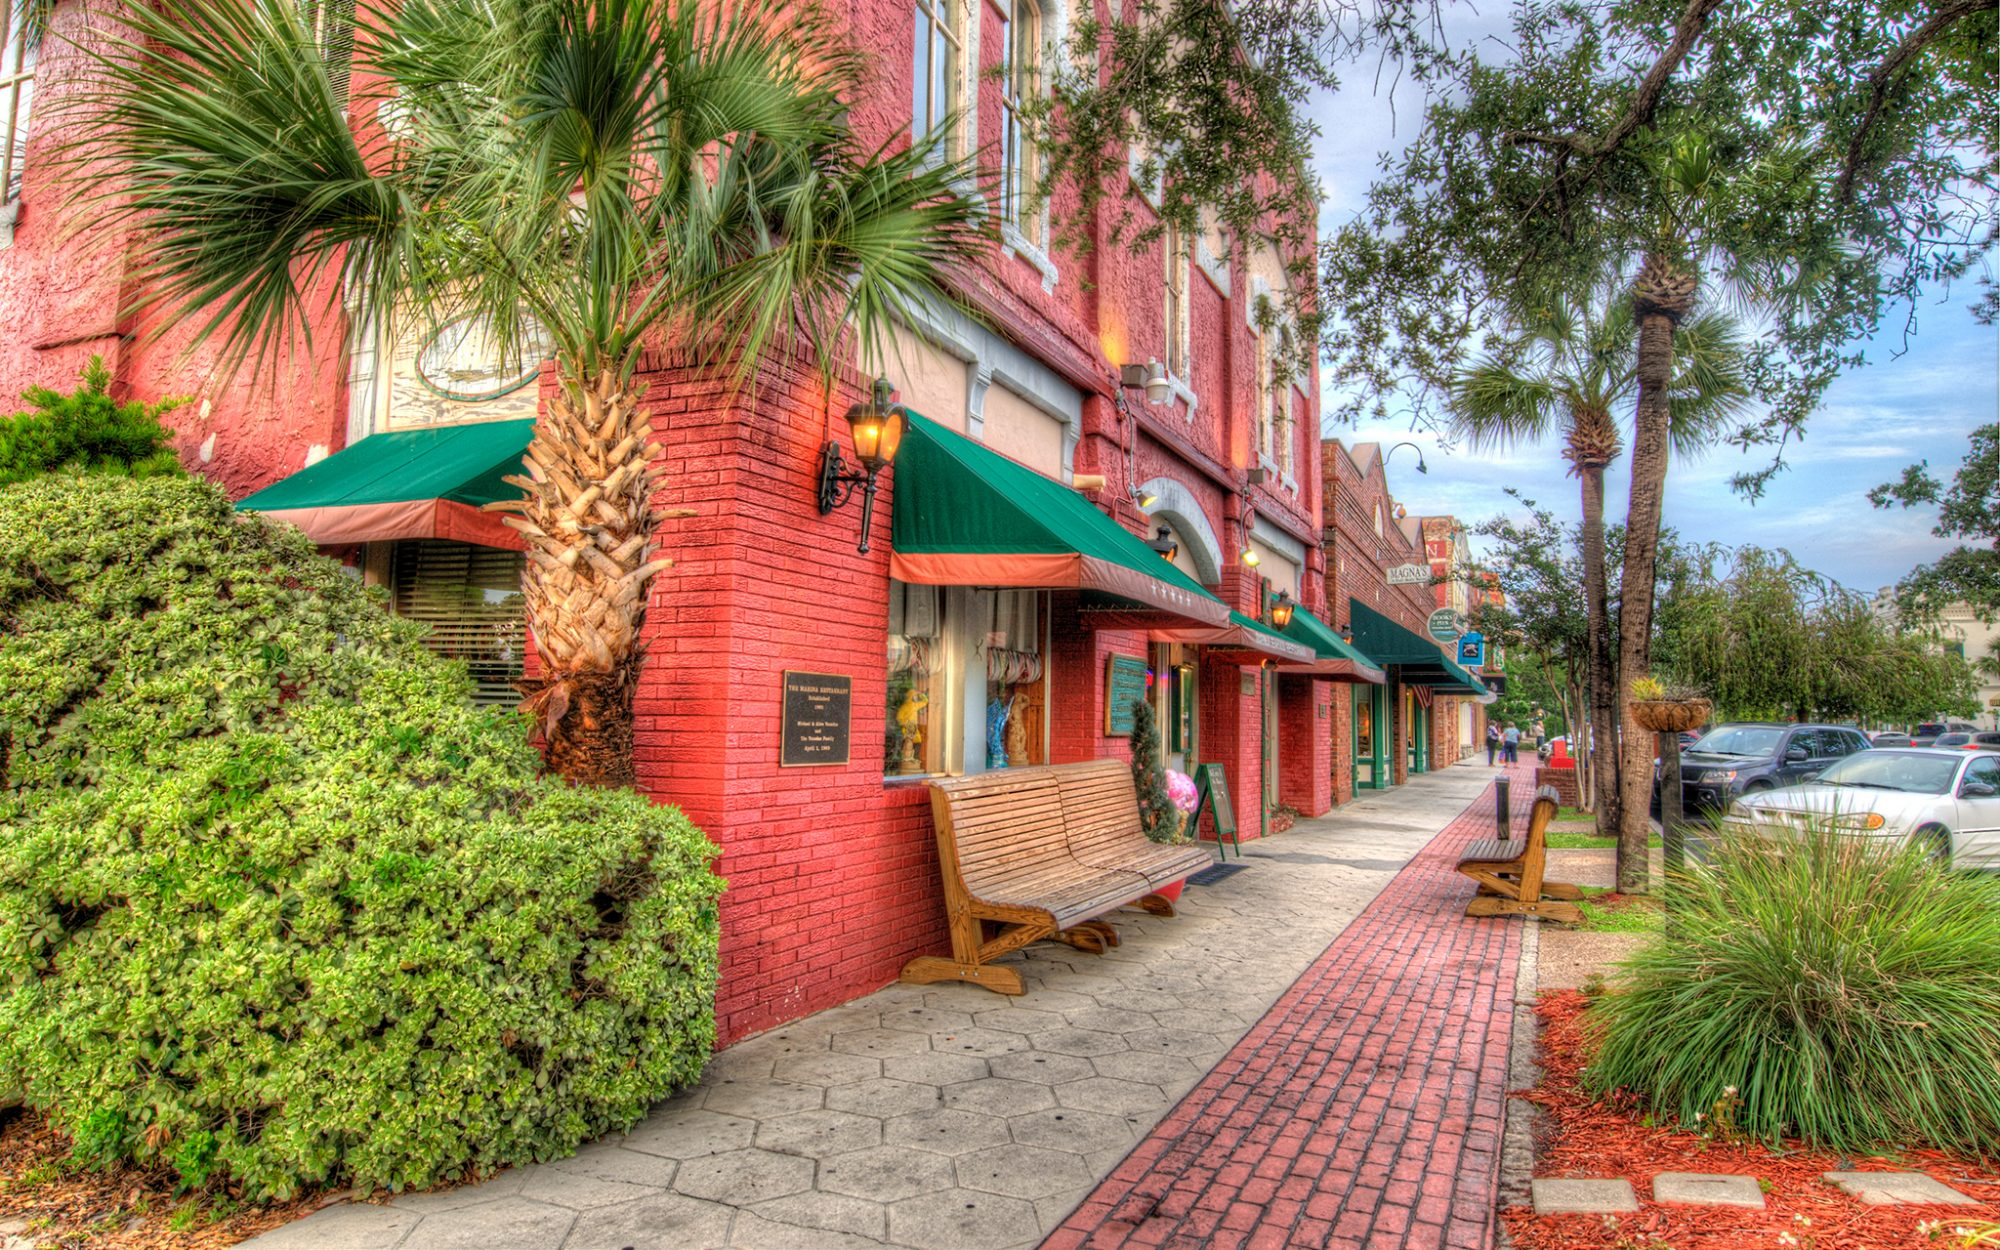 America's Best Towns for July 4th: Amelia Island